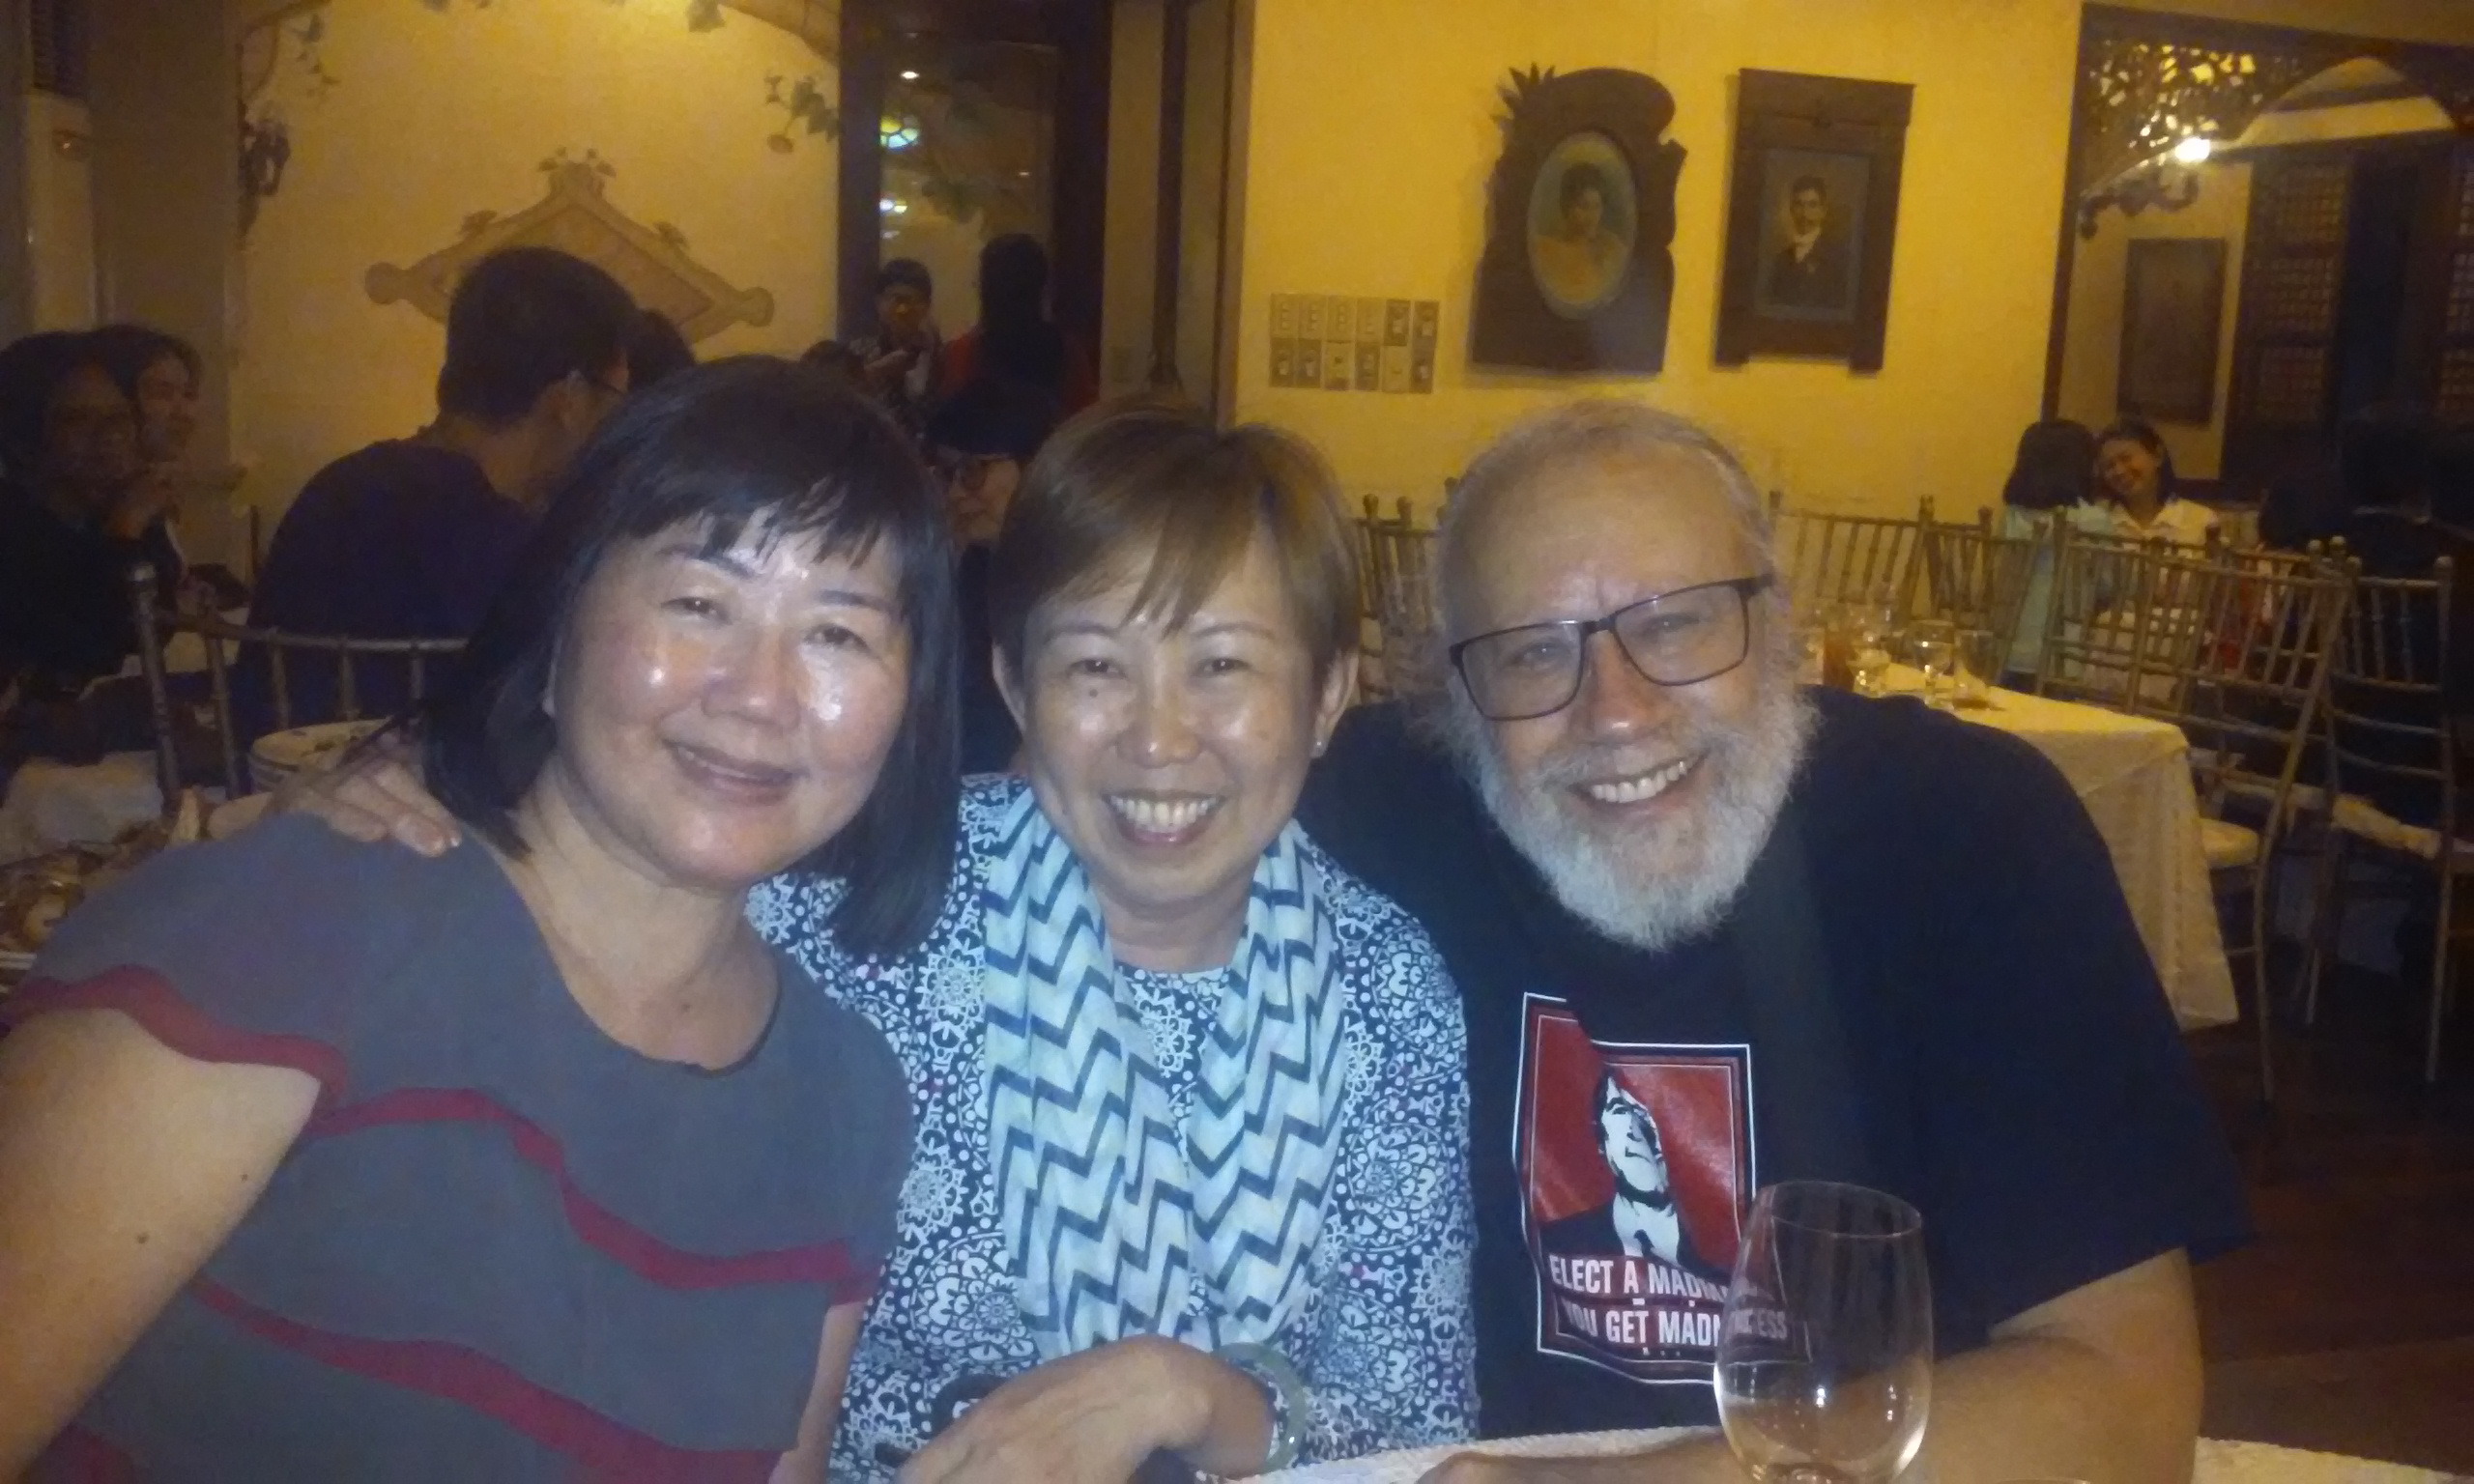 Newly elected SEAPAVAA President Irene Lim, Cheryl Chen, and Prof. Howard Besser celebrating at the SEAPAVAA 2017 conference dinner.